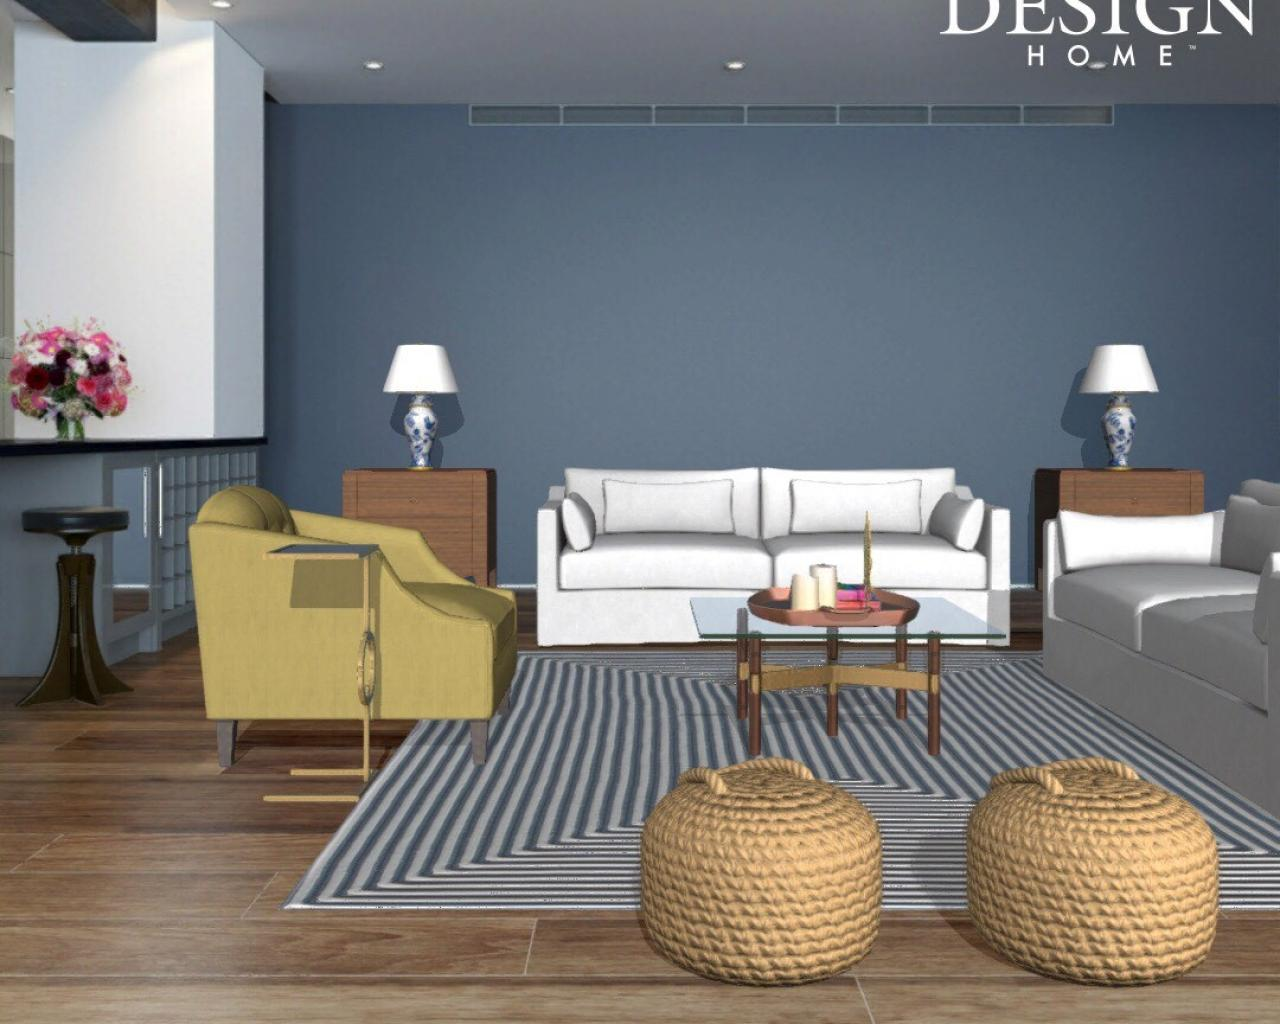 Be an interior designer with design home app hgtv 39 s for Design your house